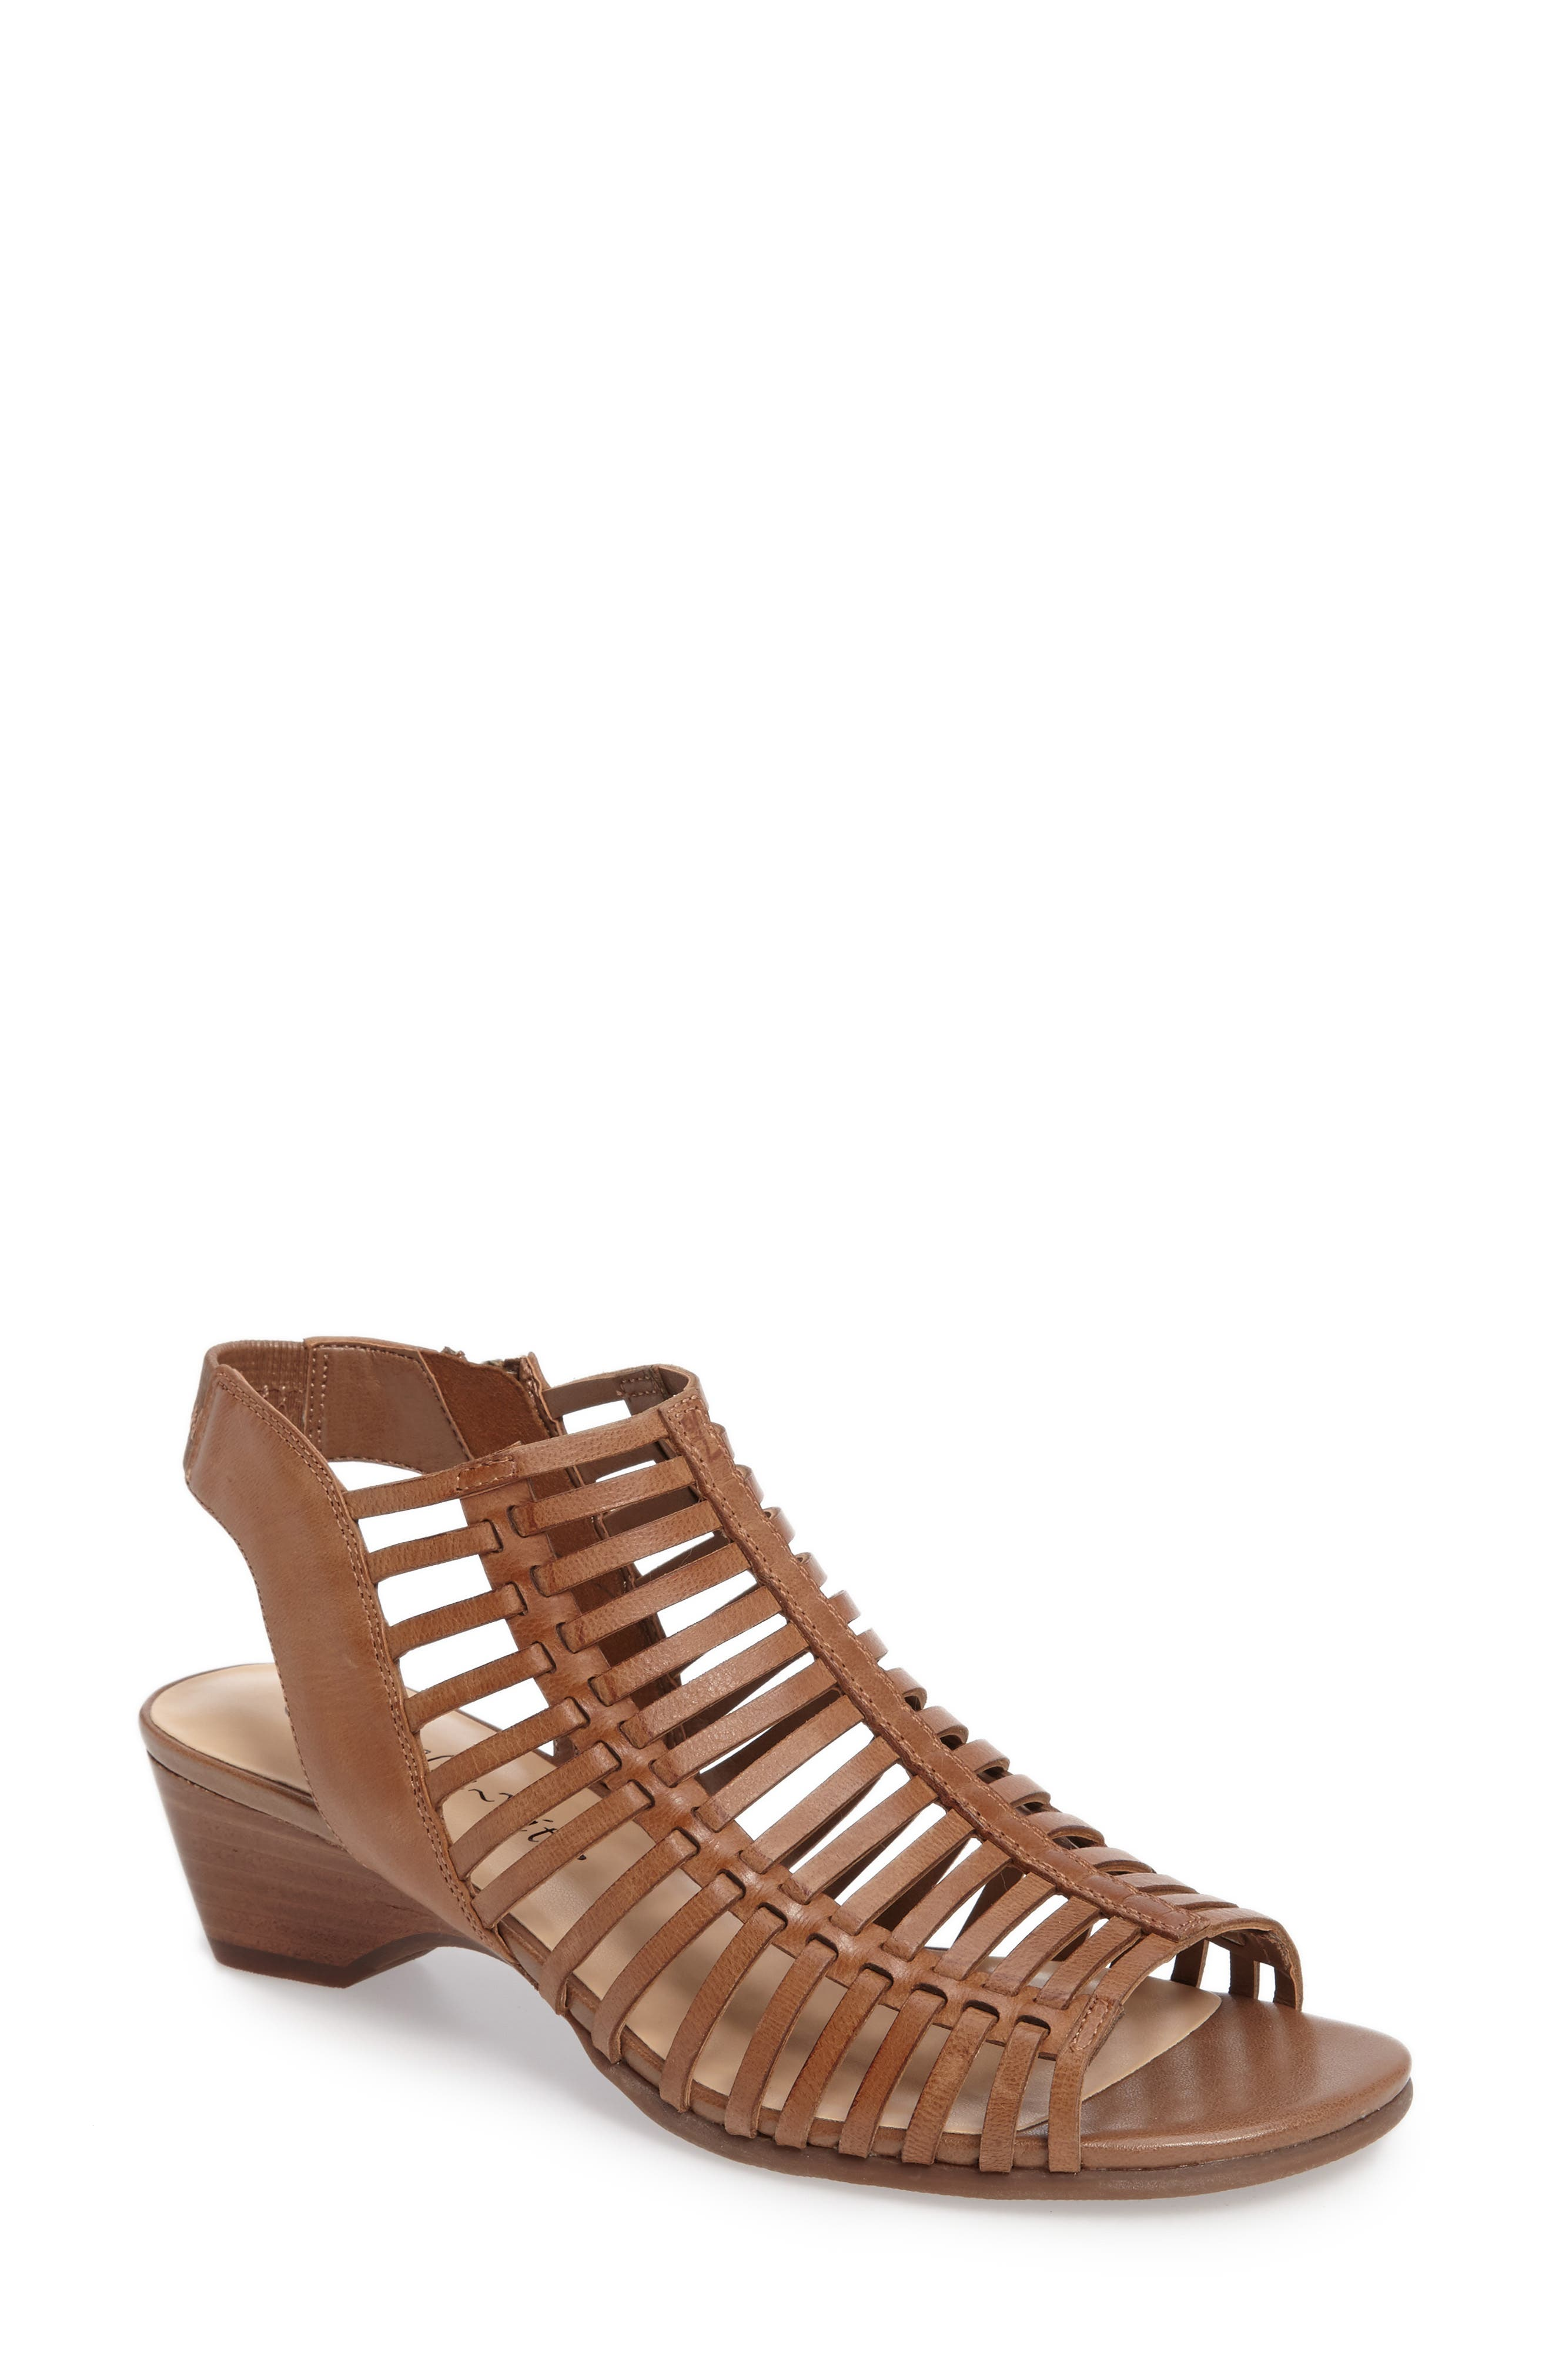 Pacey Cage Sandal,                         Main,                         color, CAMEL LEATHER